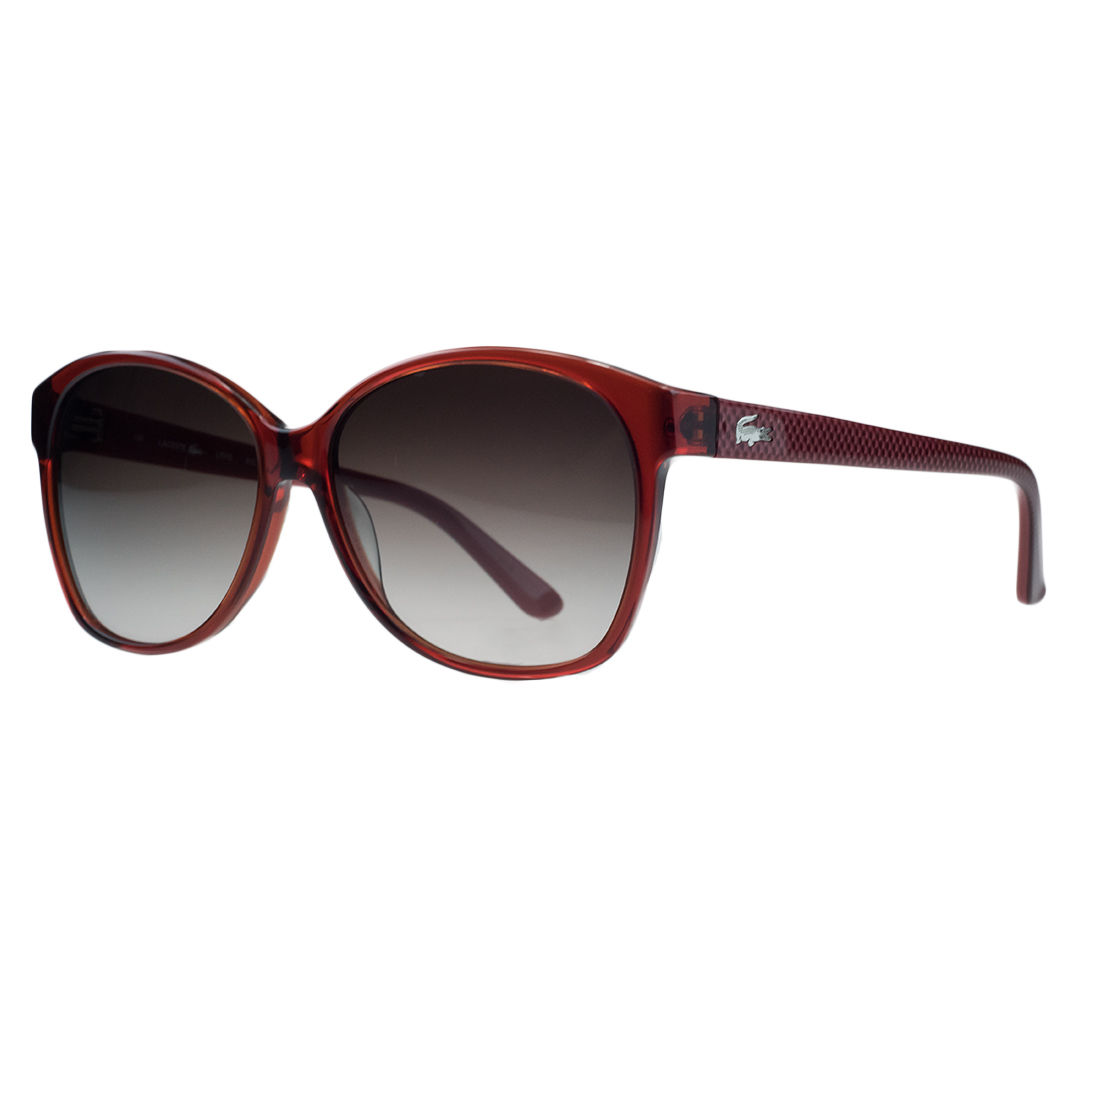 Lacoste L701/S 615 Red Wayfarer Sunglasses